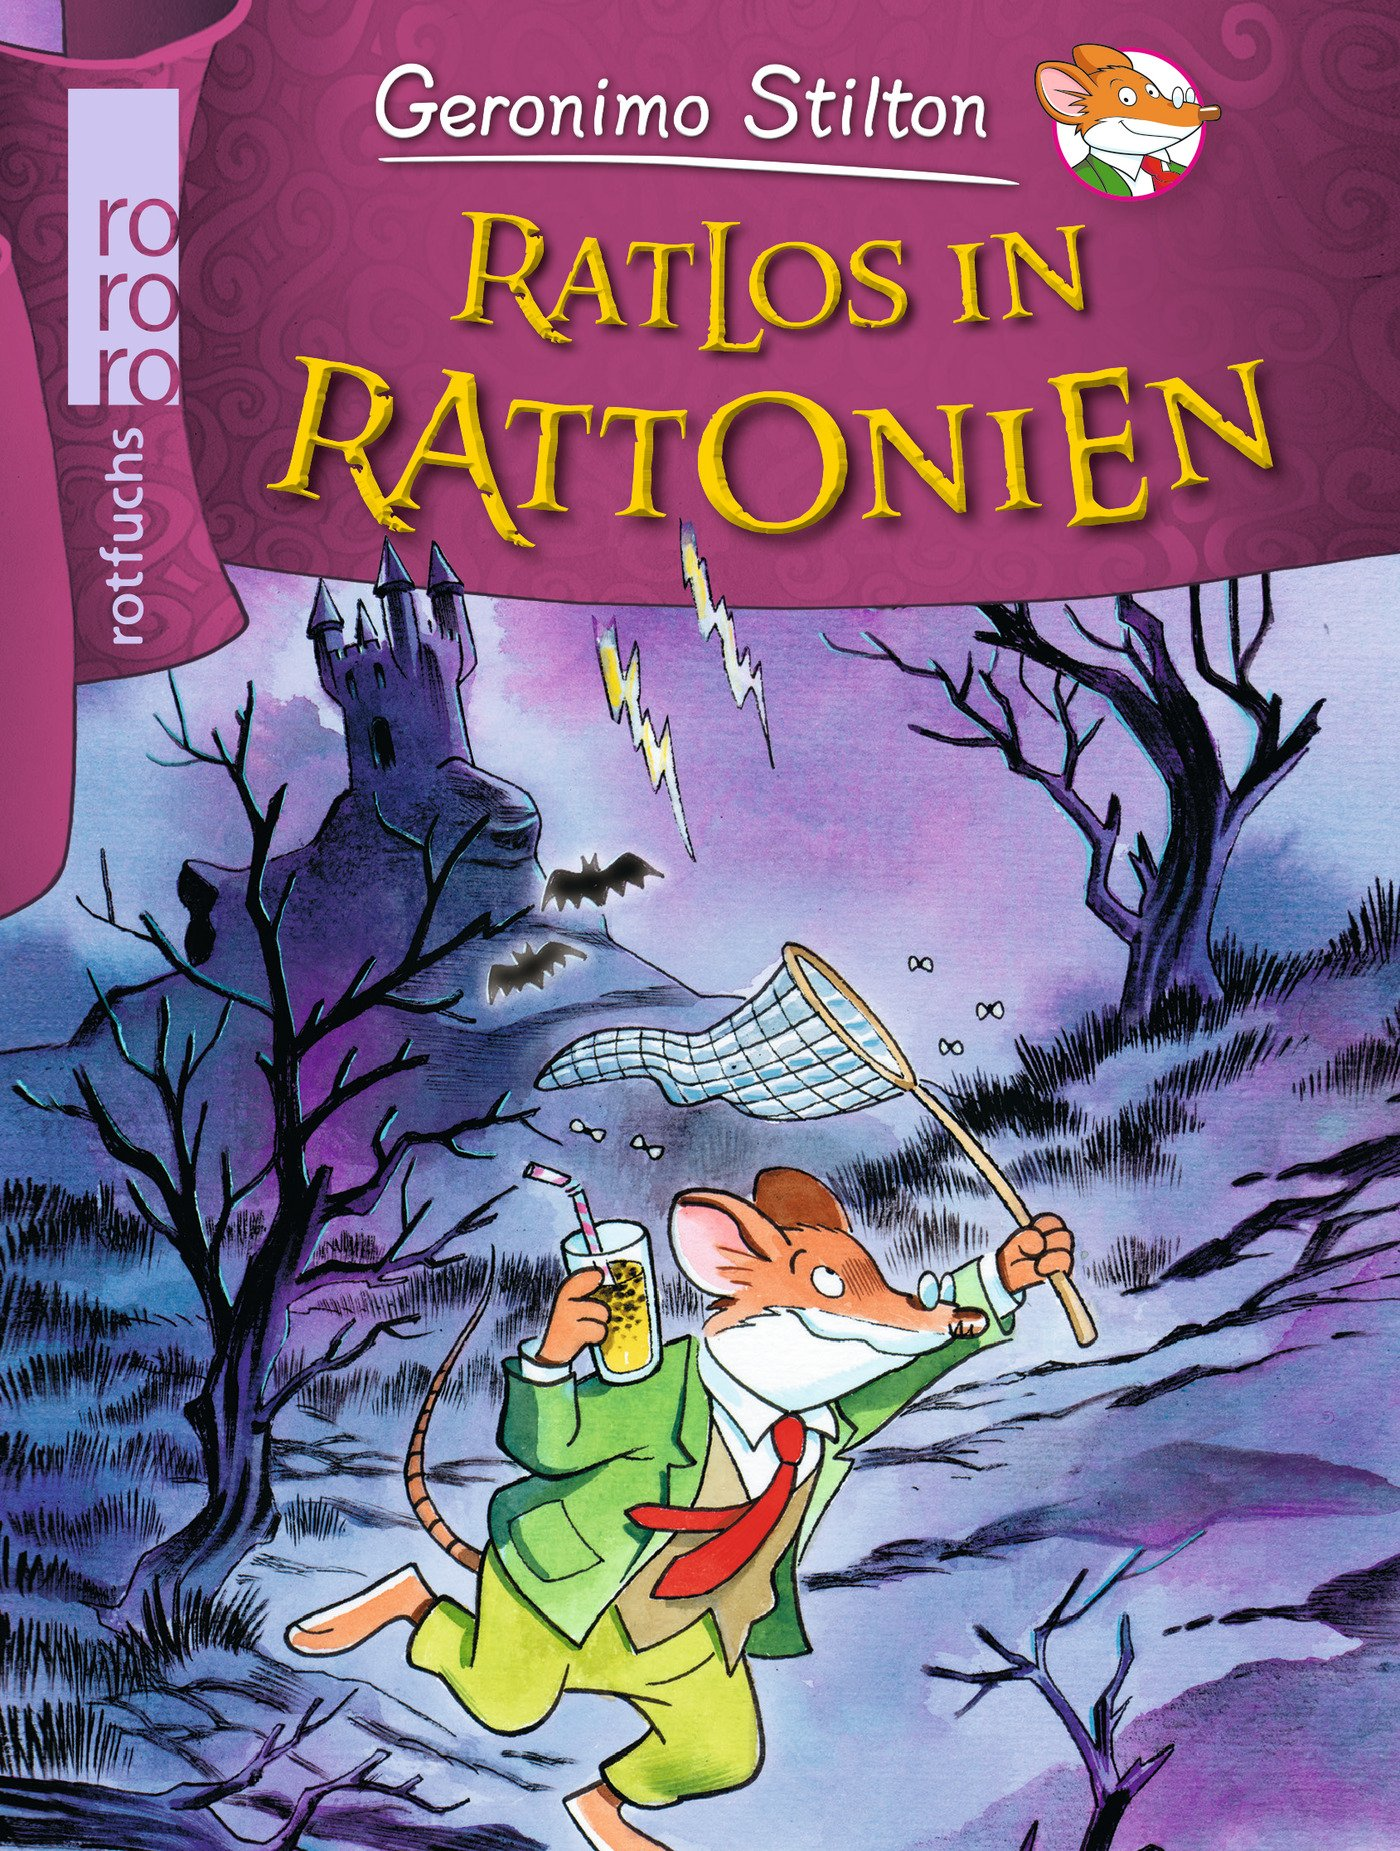 Ratlos in Rattonien (Geronimo Stilton)